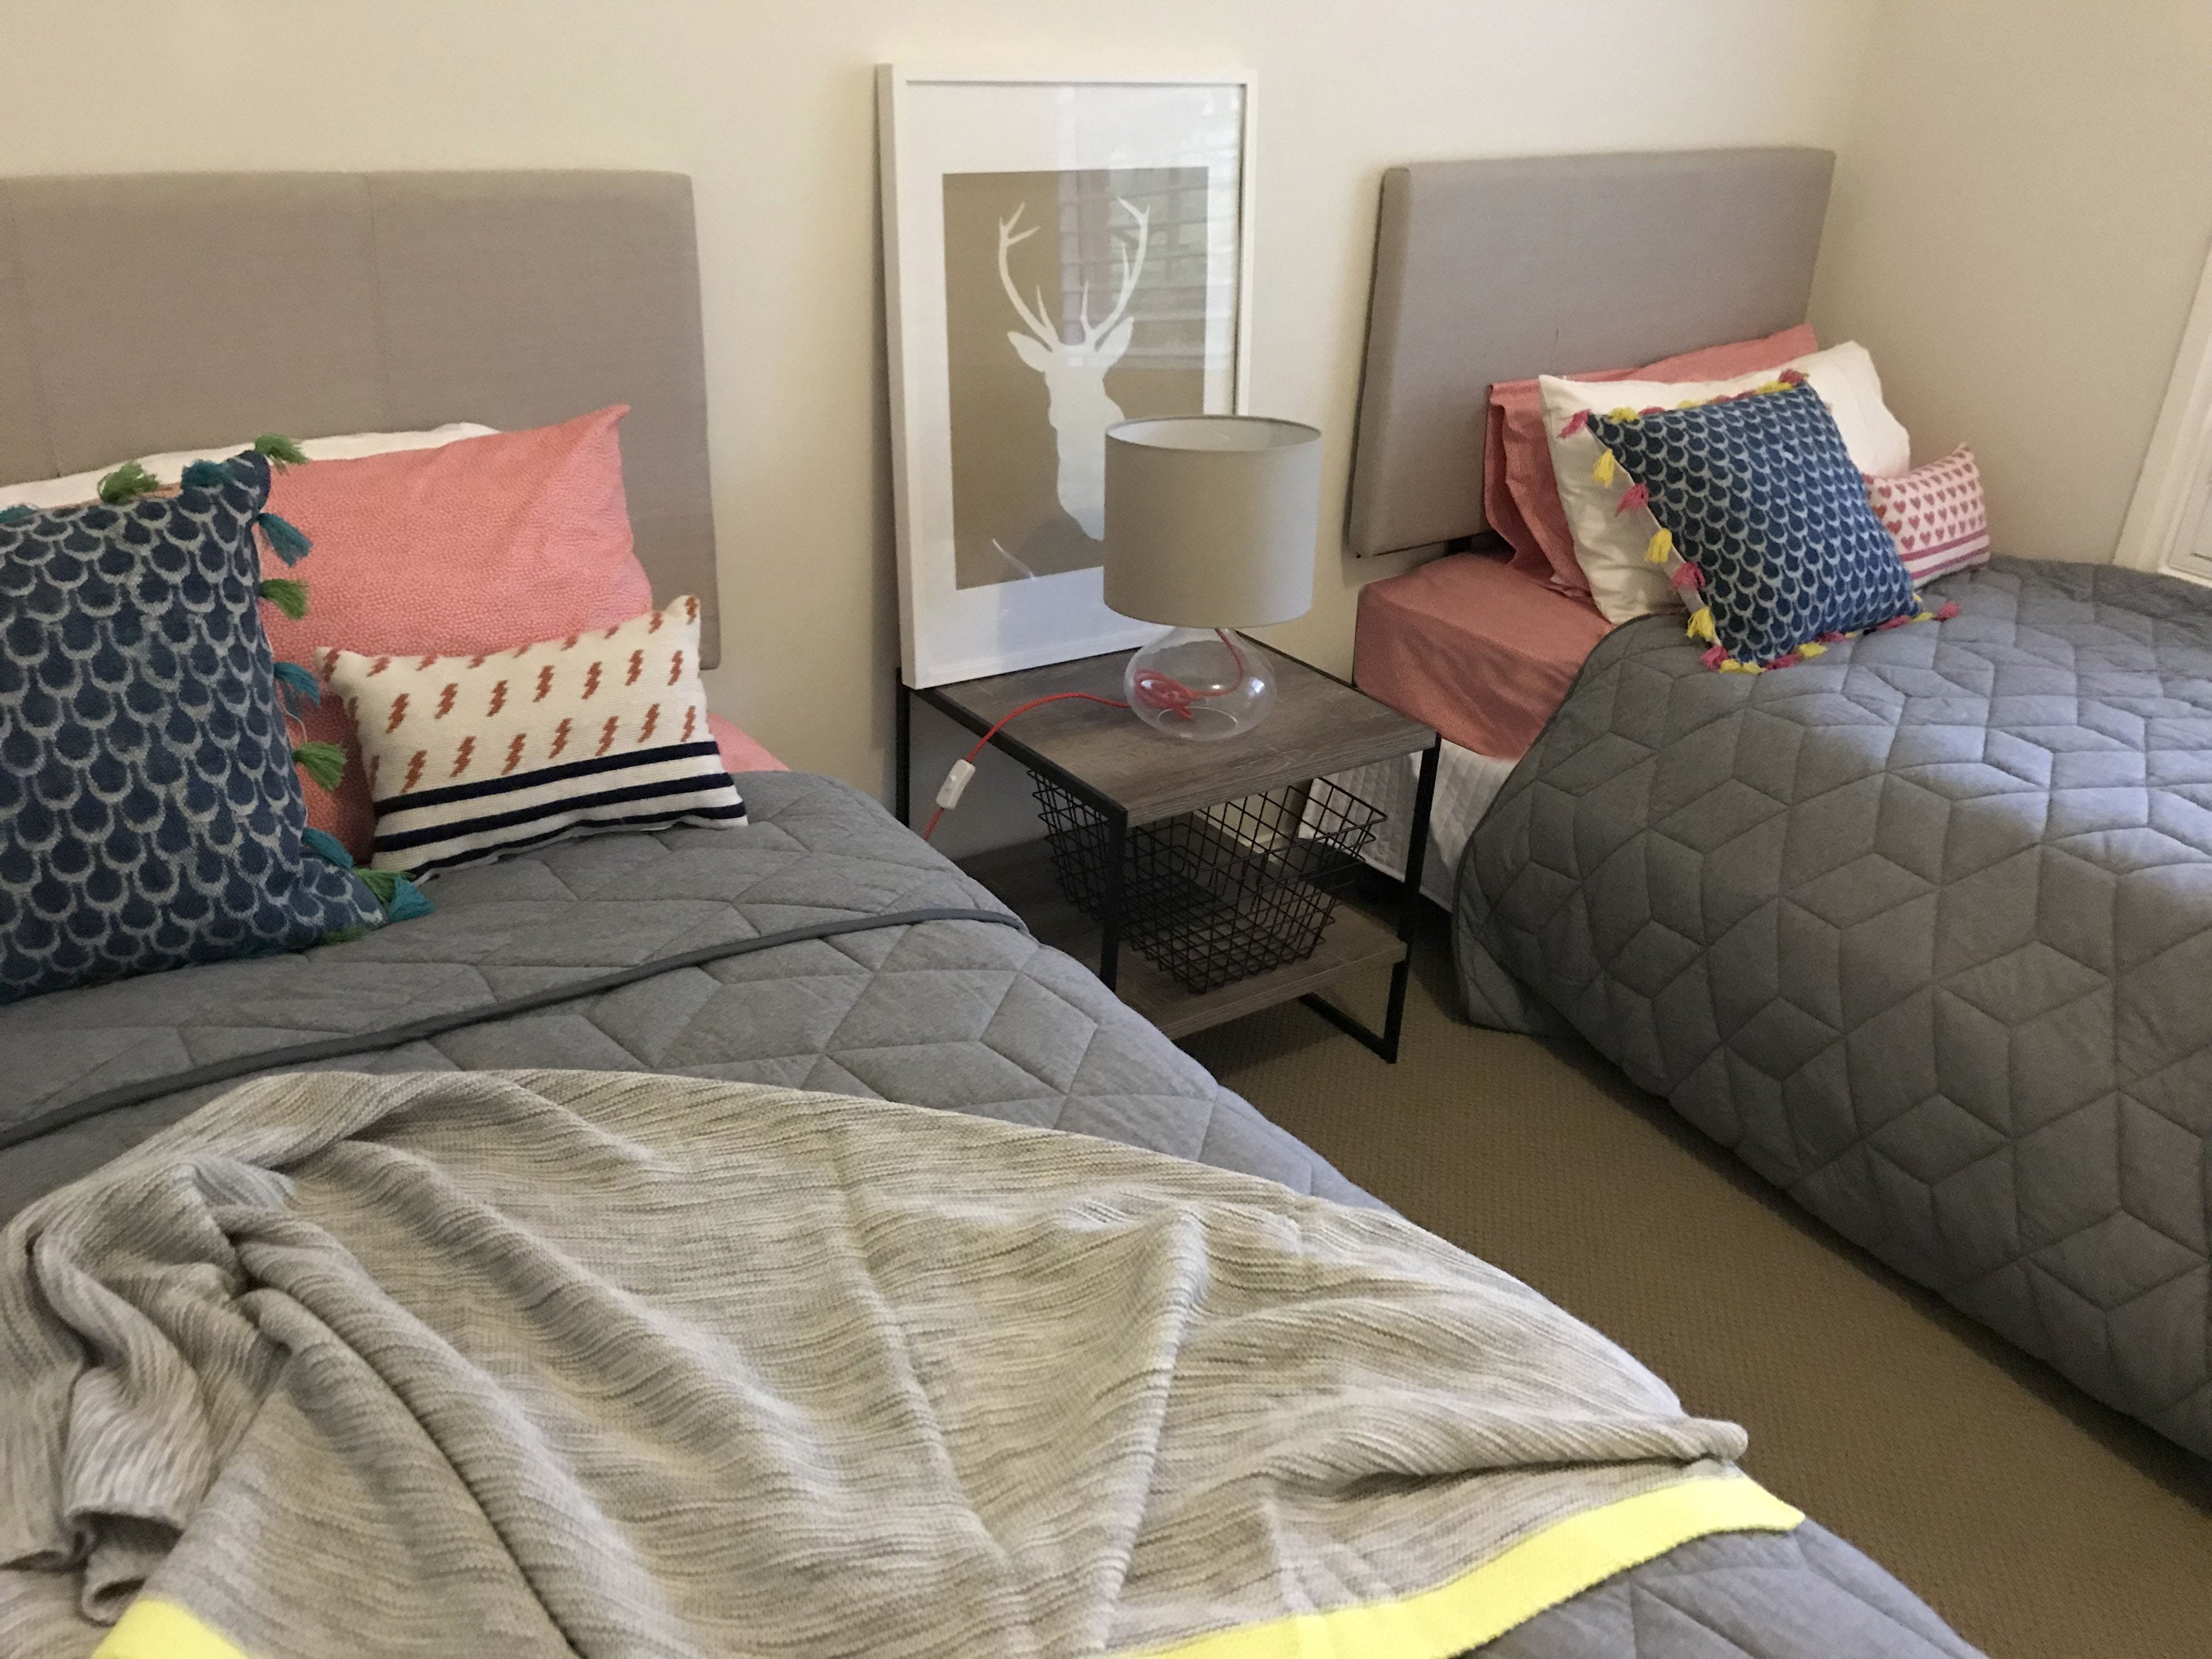 Gracefield House single bedroom sleeps 2 comfortably. Perfect for the kids!